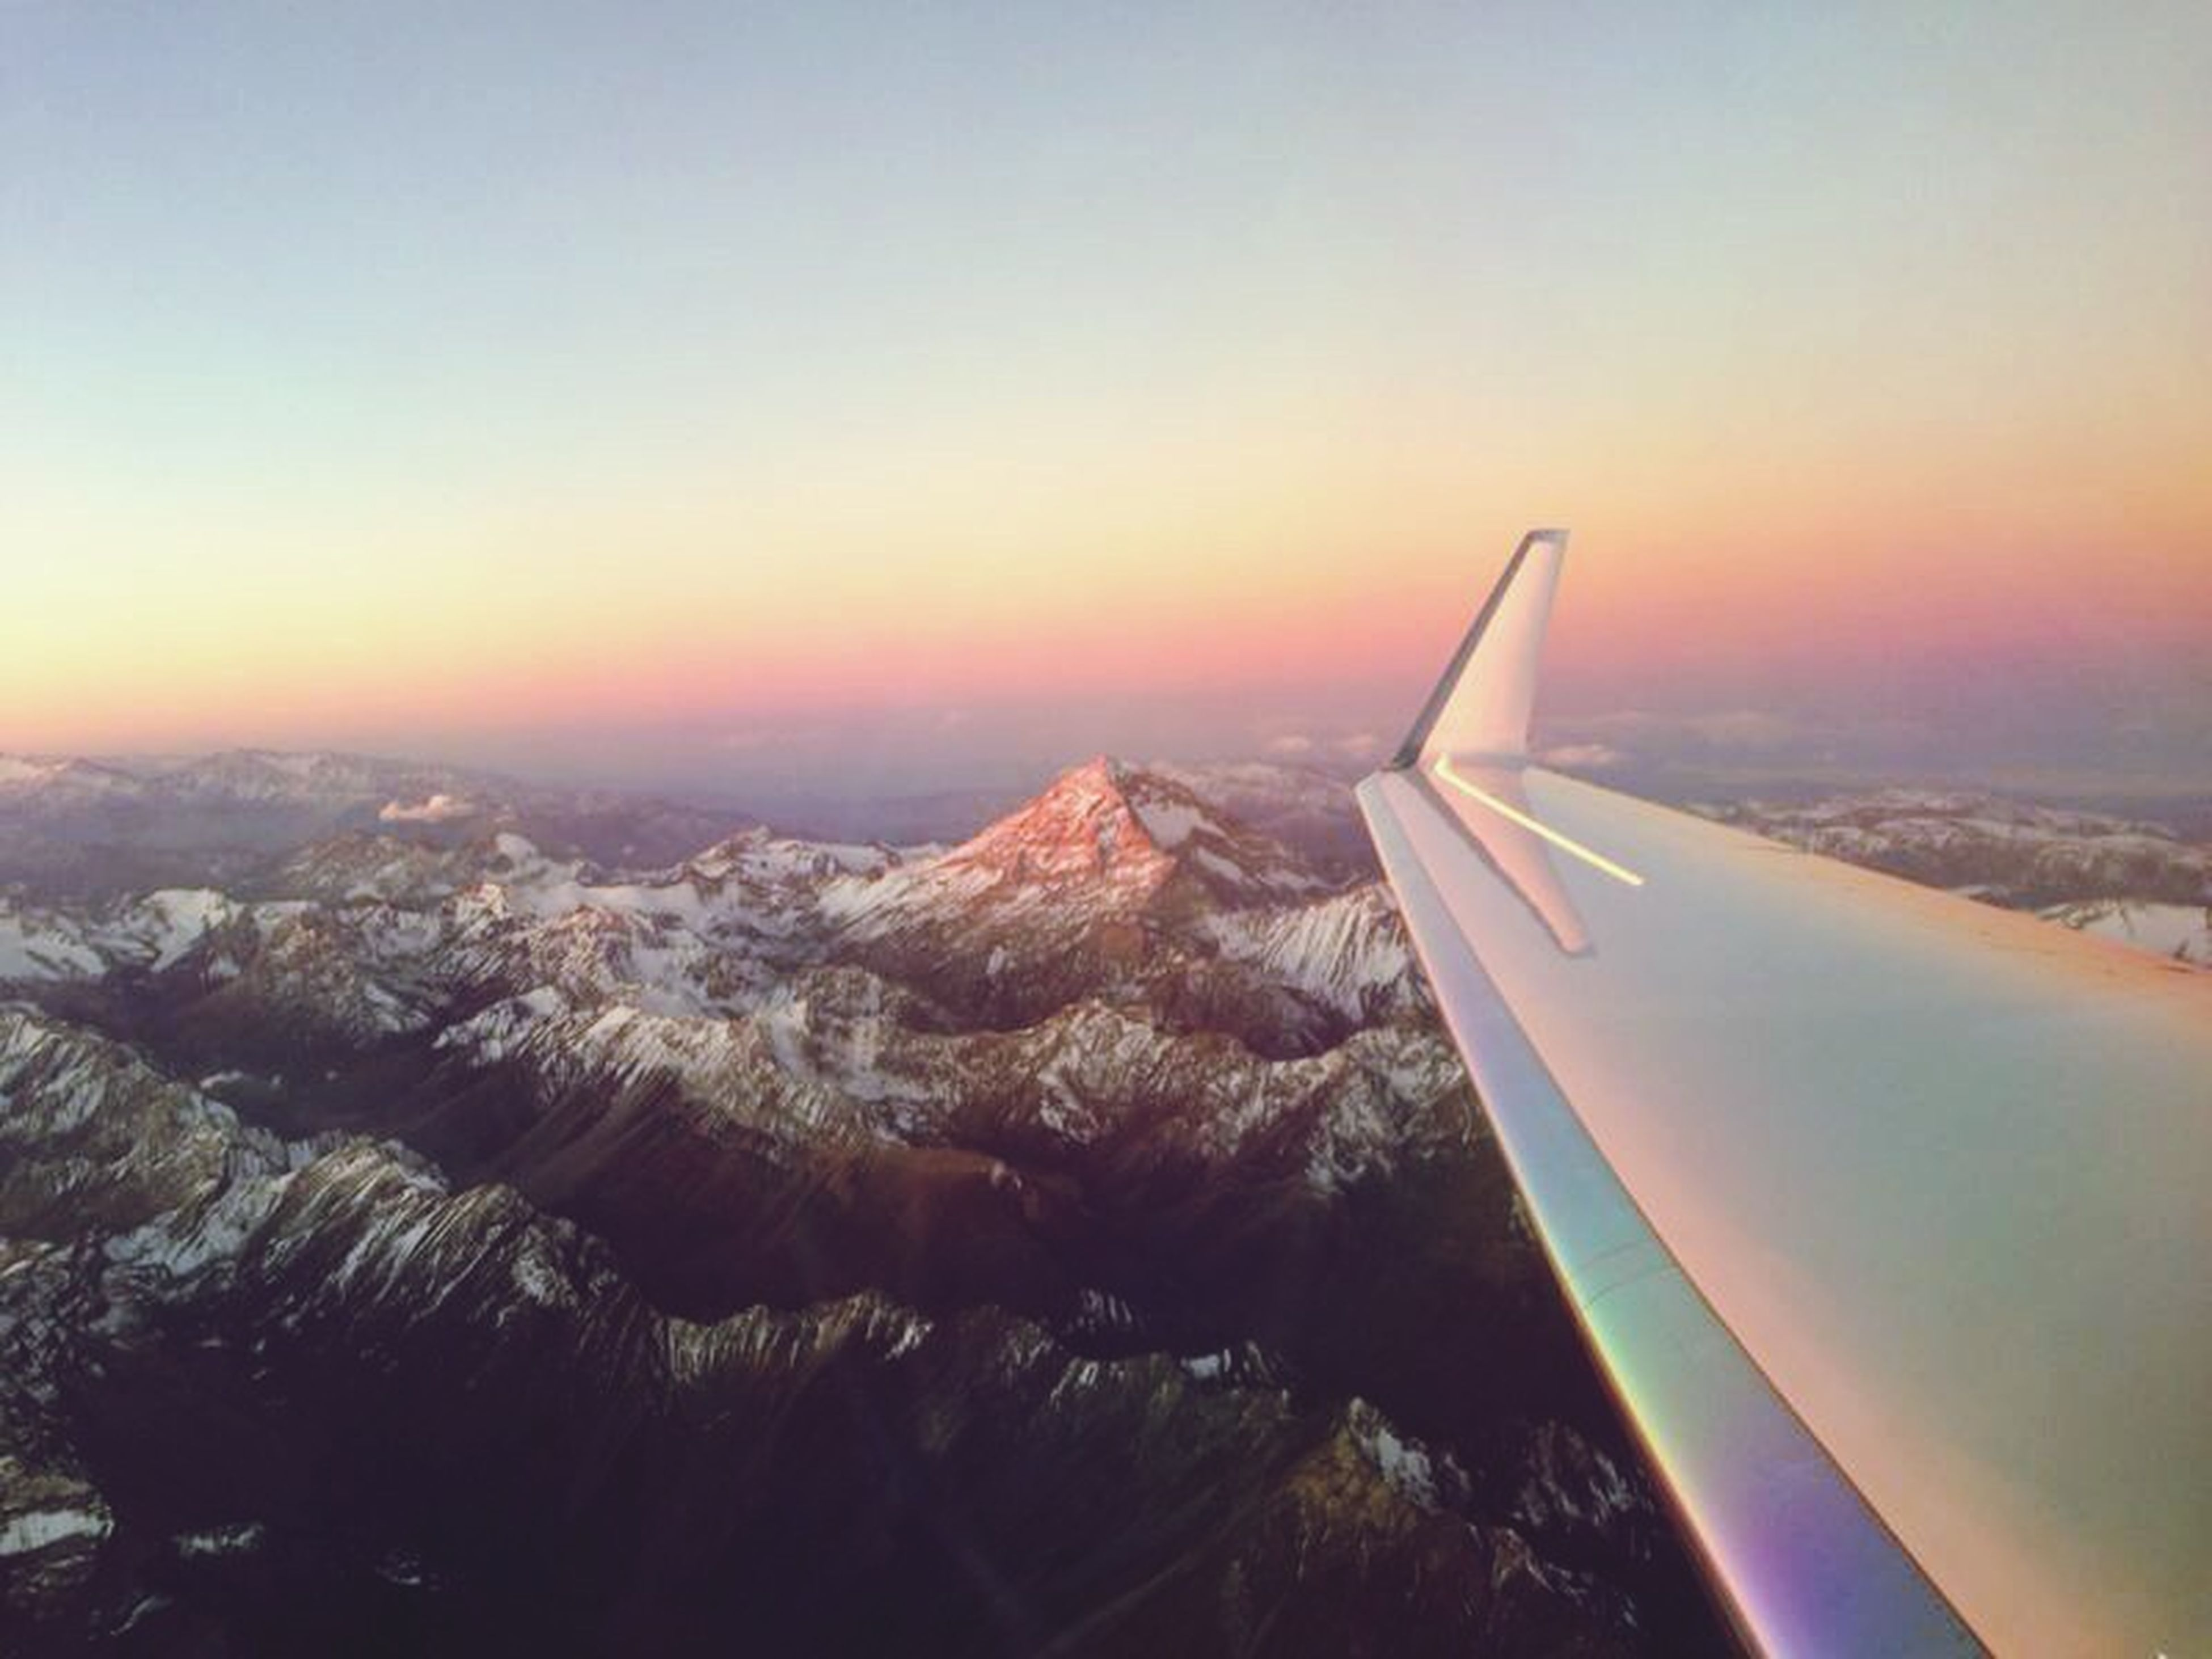 aircraft wing, airplane, air vehicle, sunset, flying, cropped, transportation, part of, landscape, sky, scenics, aerial view, mode of transport, beauty in nature, nature, clear sky, orange color, travel, mid-air, sun